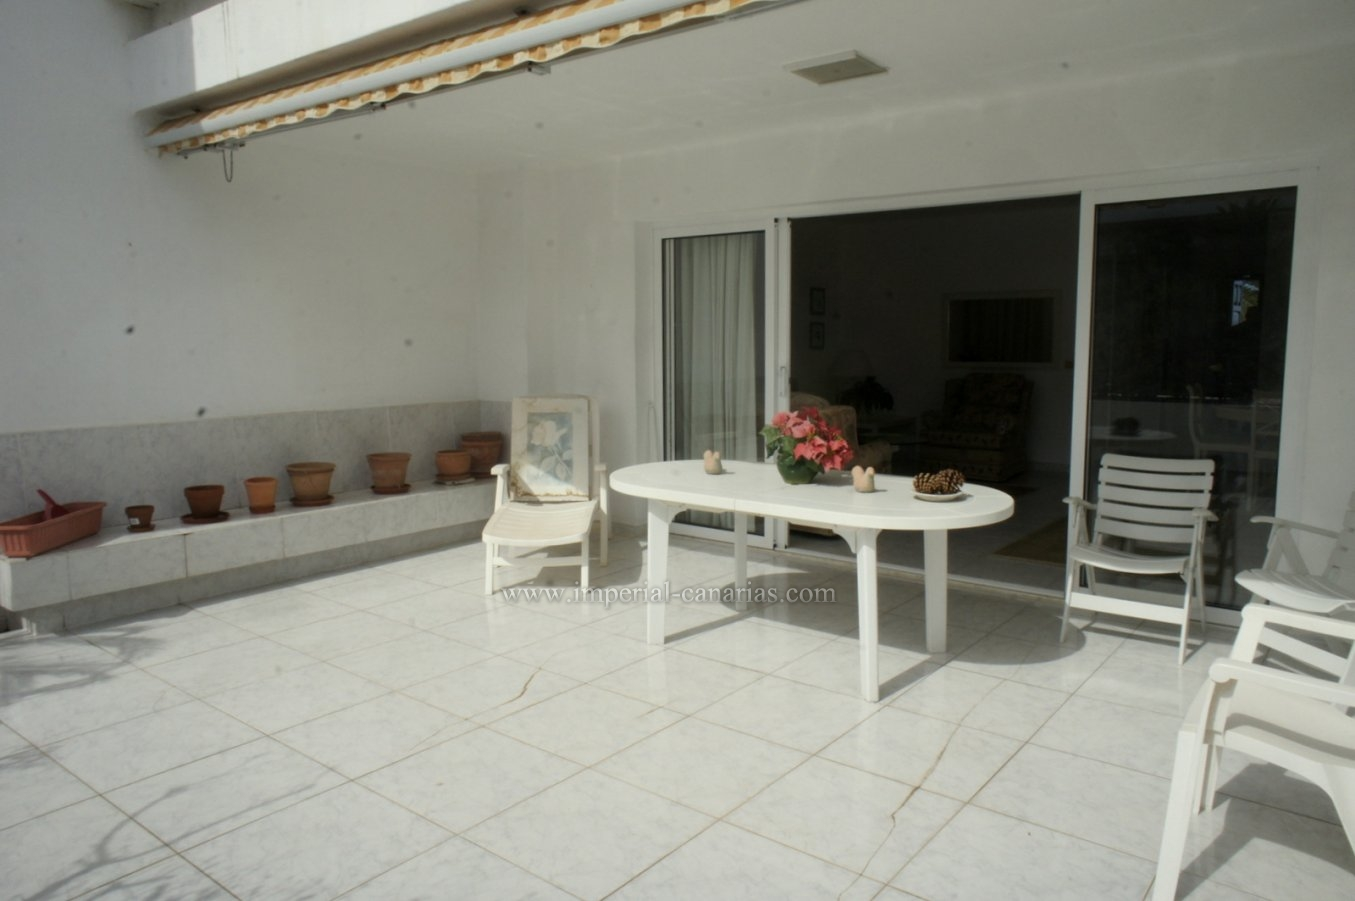 Splendid apartment in La Paz with huge terrace and nice views!